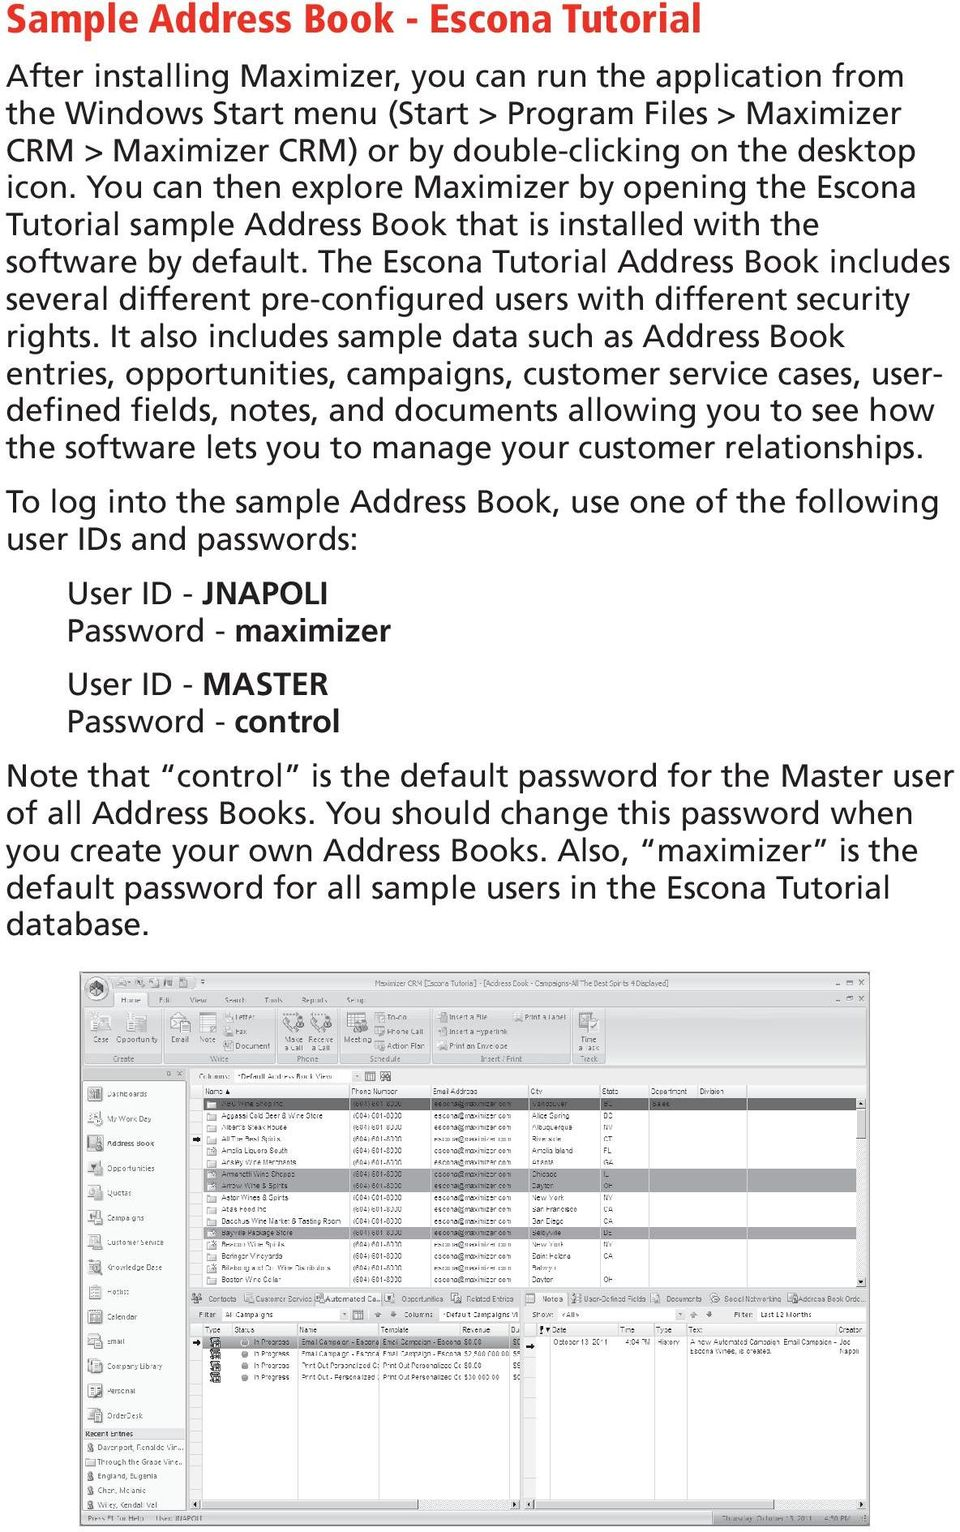 The Escona Tutorial Address Book includes several different pre-configured users with different security rights.